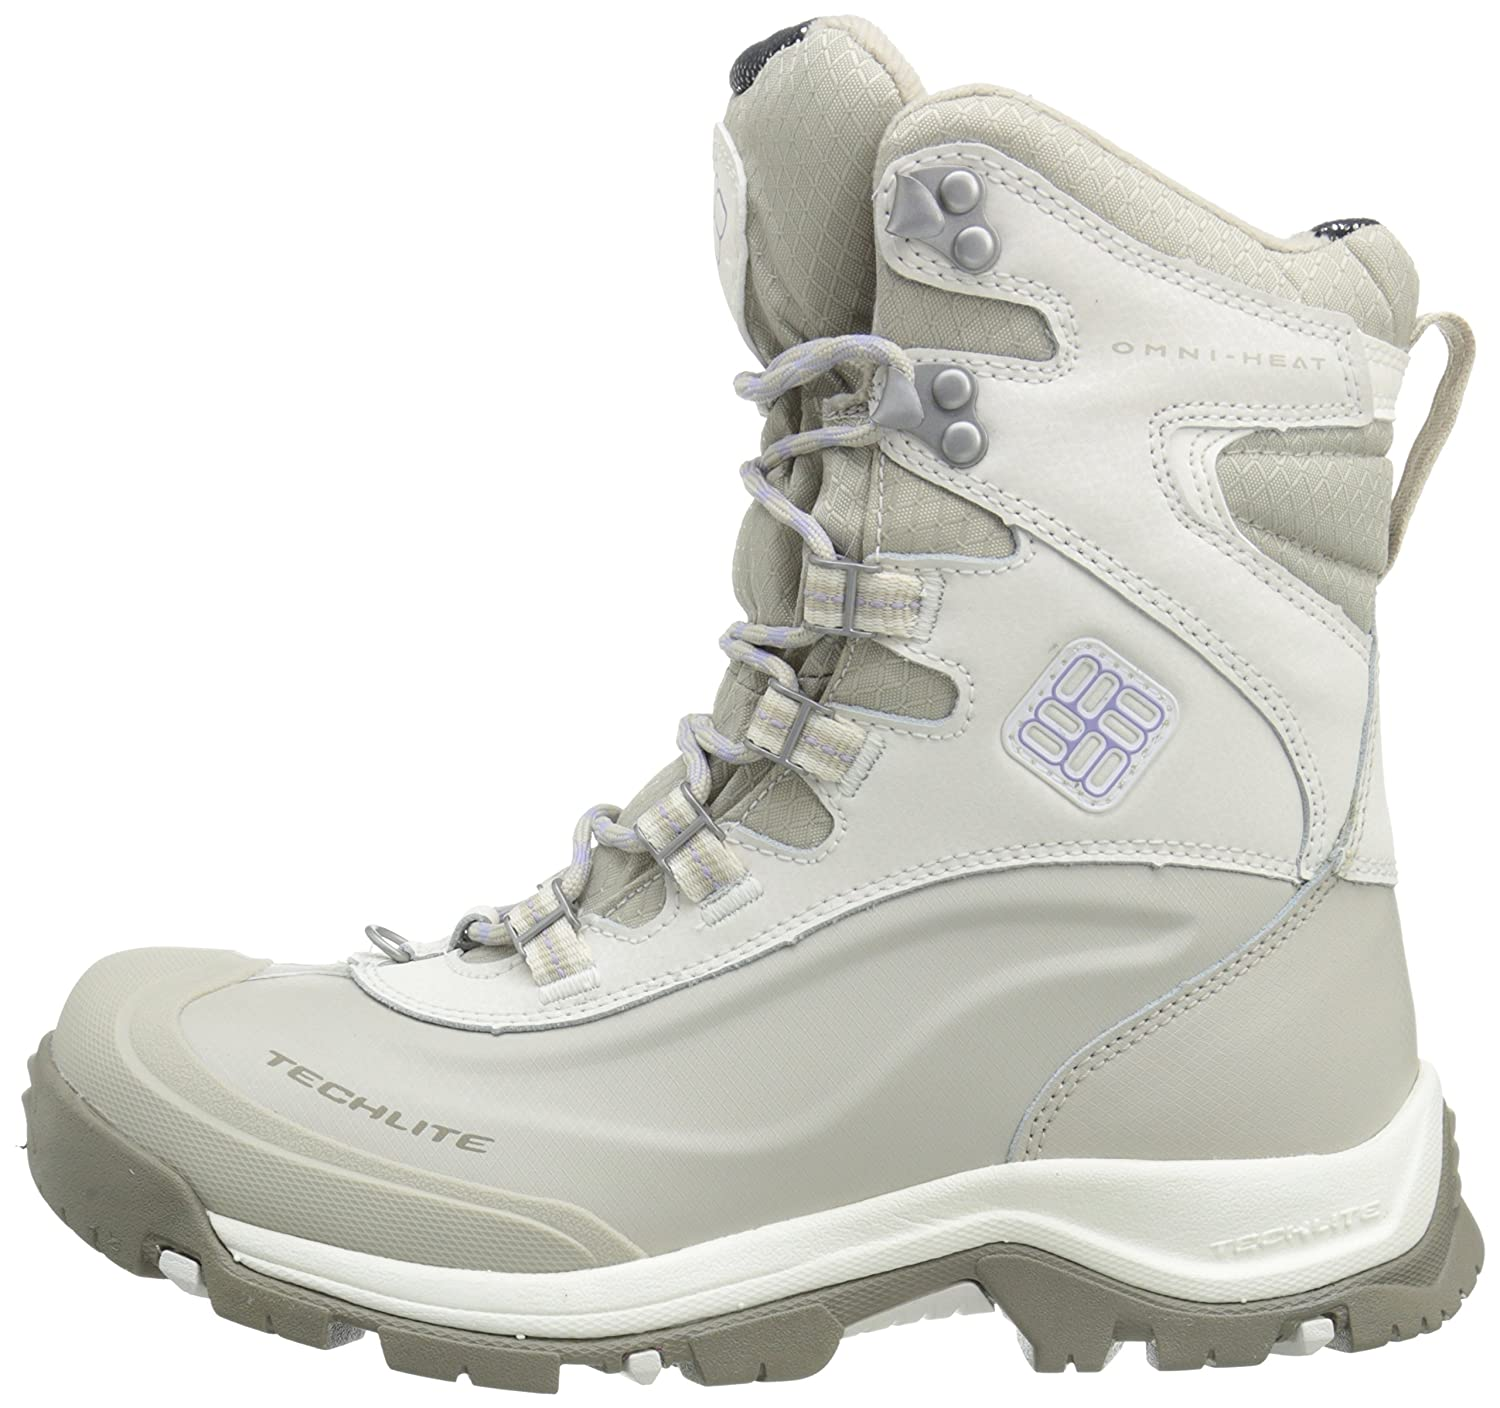 Columbia Women's Buga Plus III 9 Omni Heat Boot B00Q7WLC48 9 III B(M) US|Sea Salt/Twili 49b546